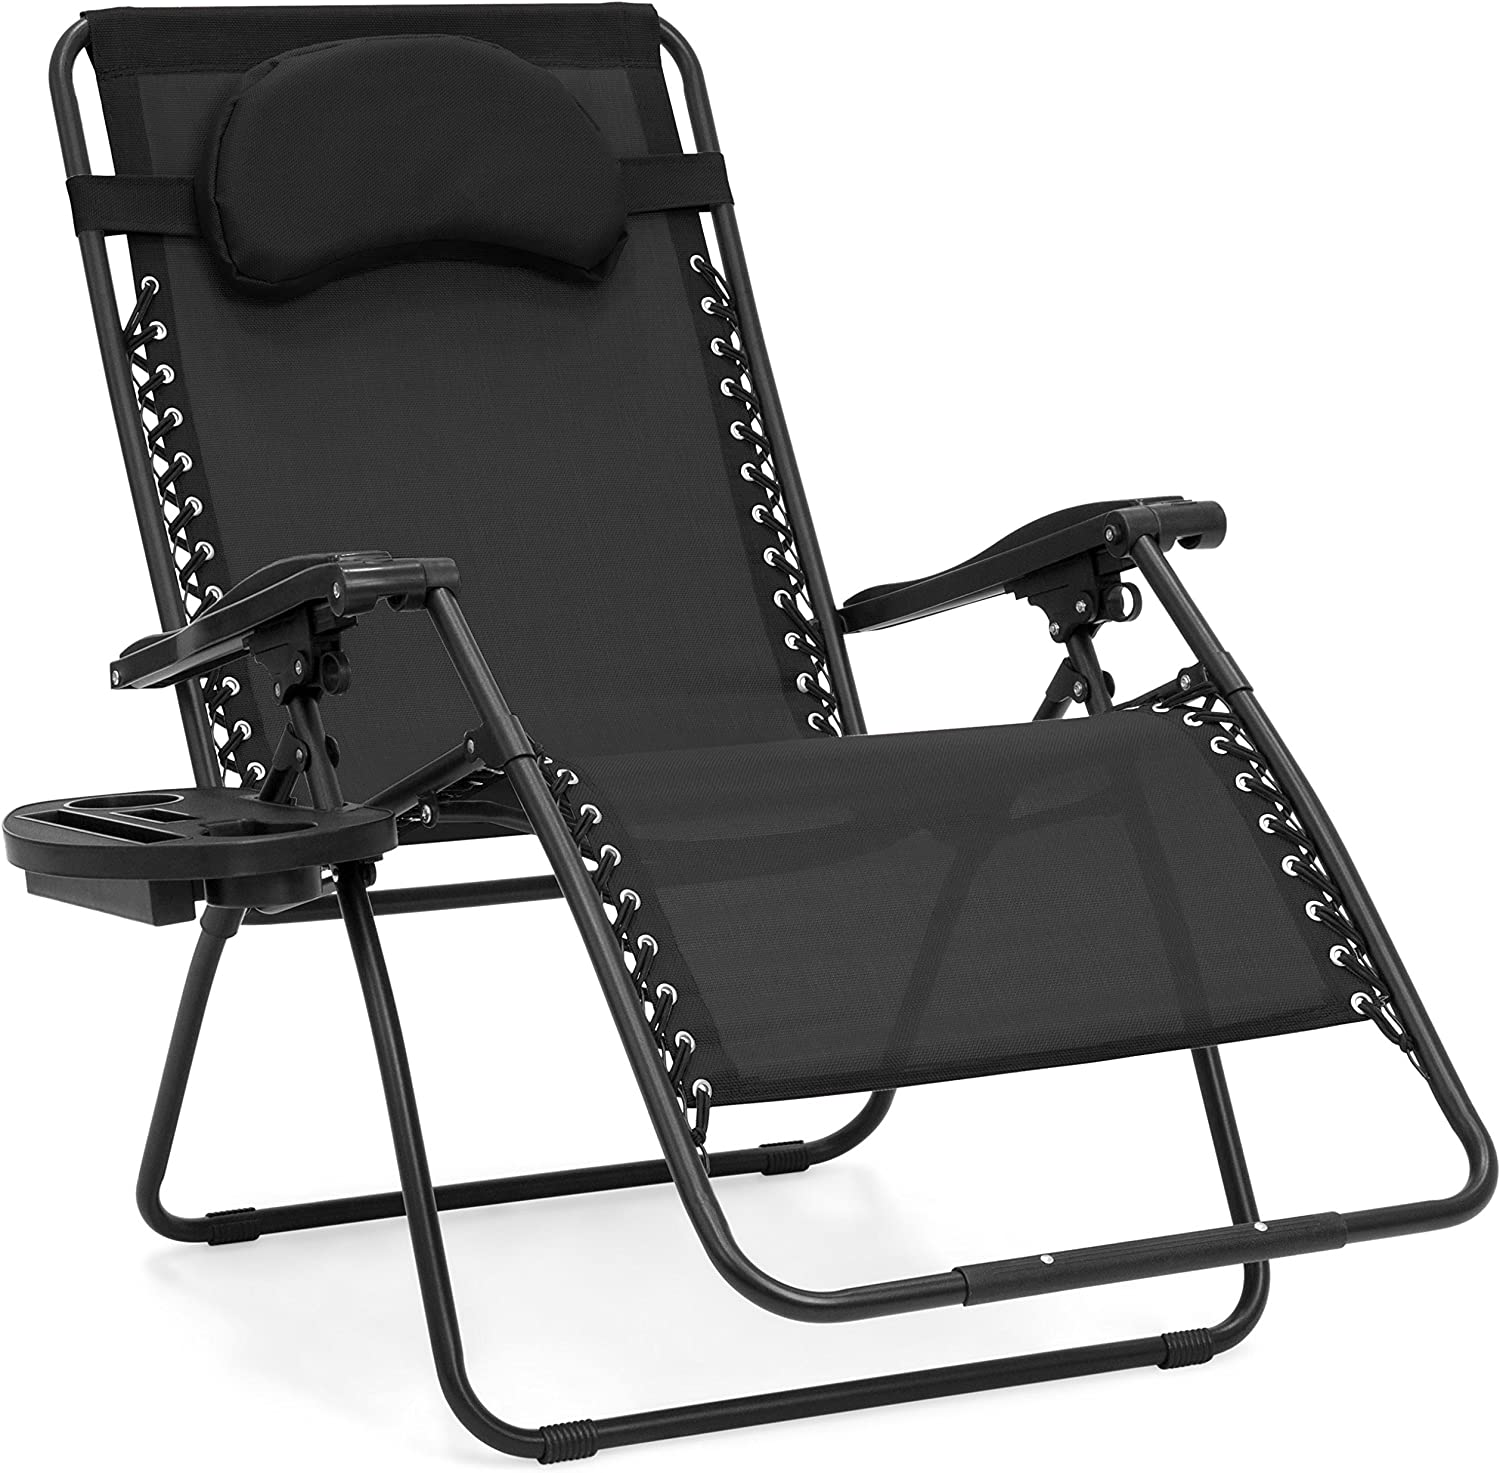 Best Choice Products Oversized Folding Mesh Zero Gravity Recliner Chair w Cup Holder Accessory Tray and Removable Pillow, Black